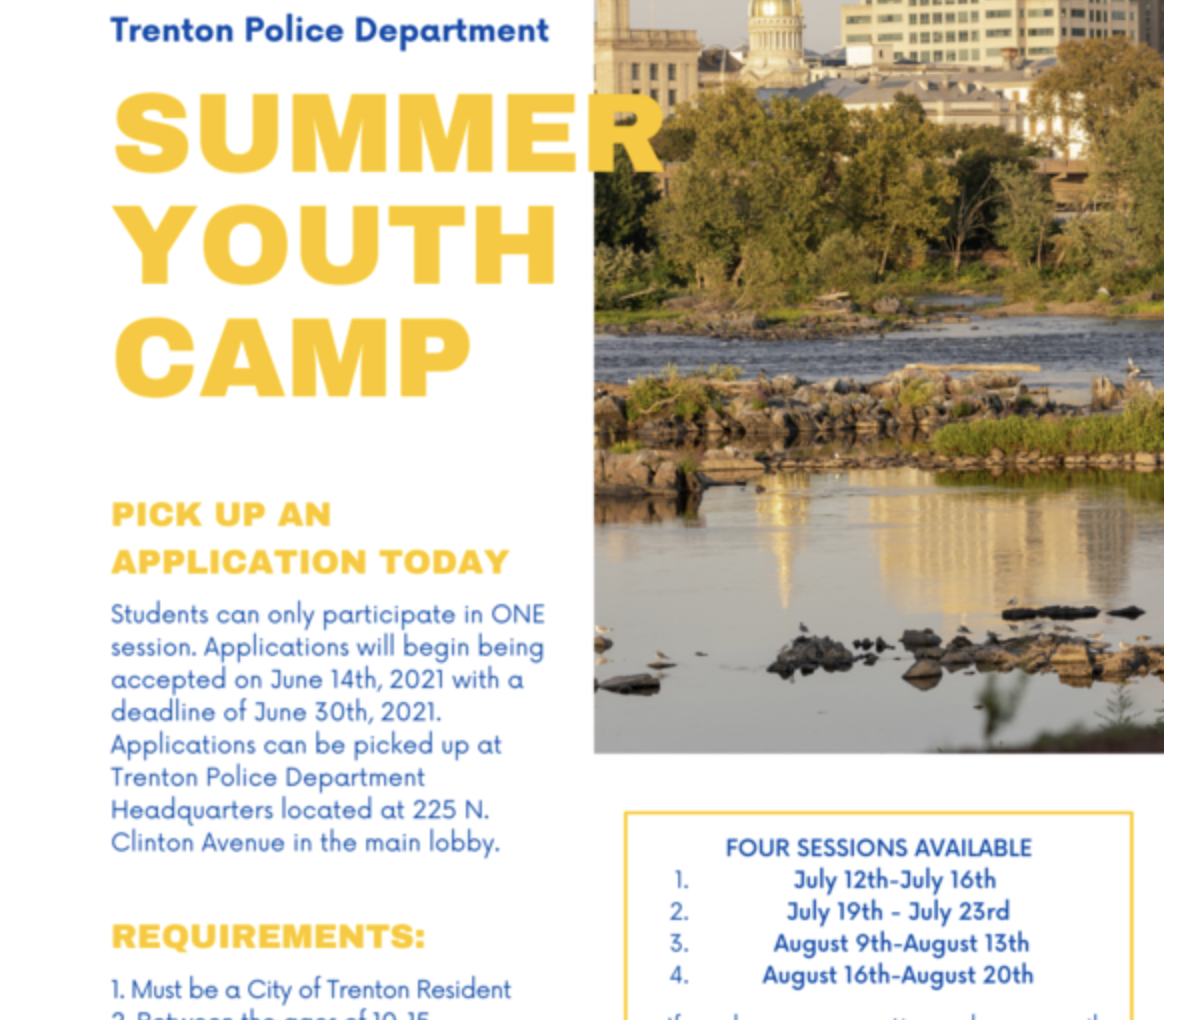 Trenton Police Department Offers Annual Summer Youth Camp